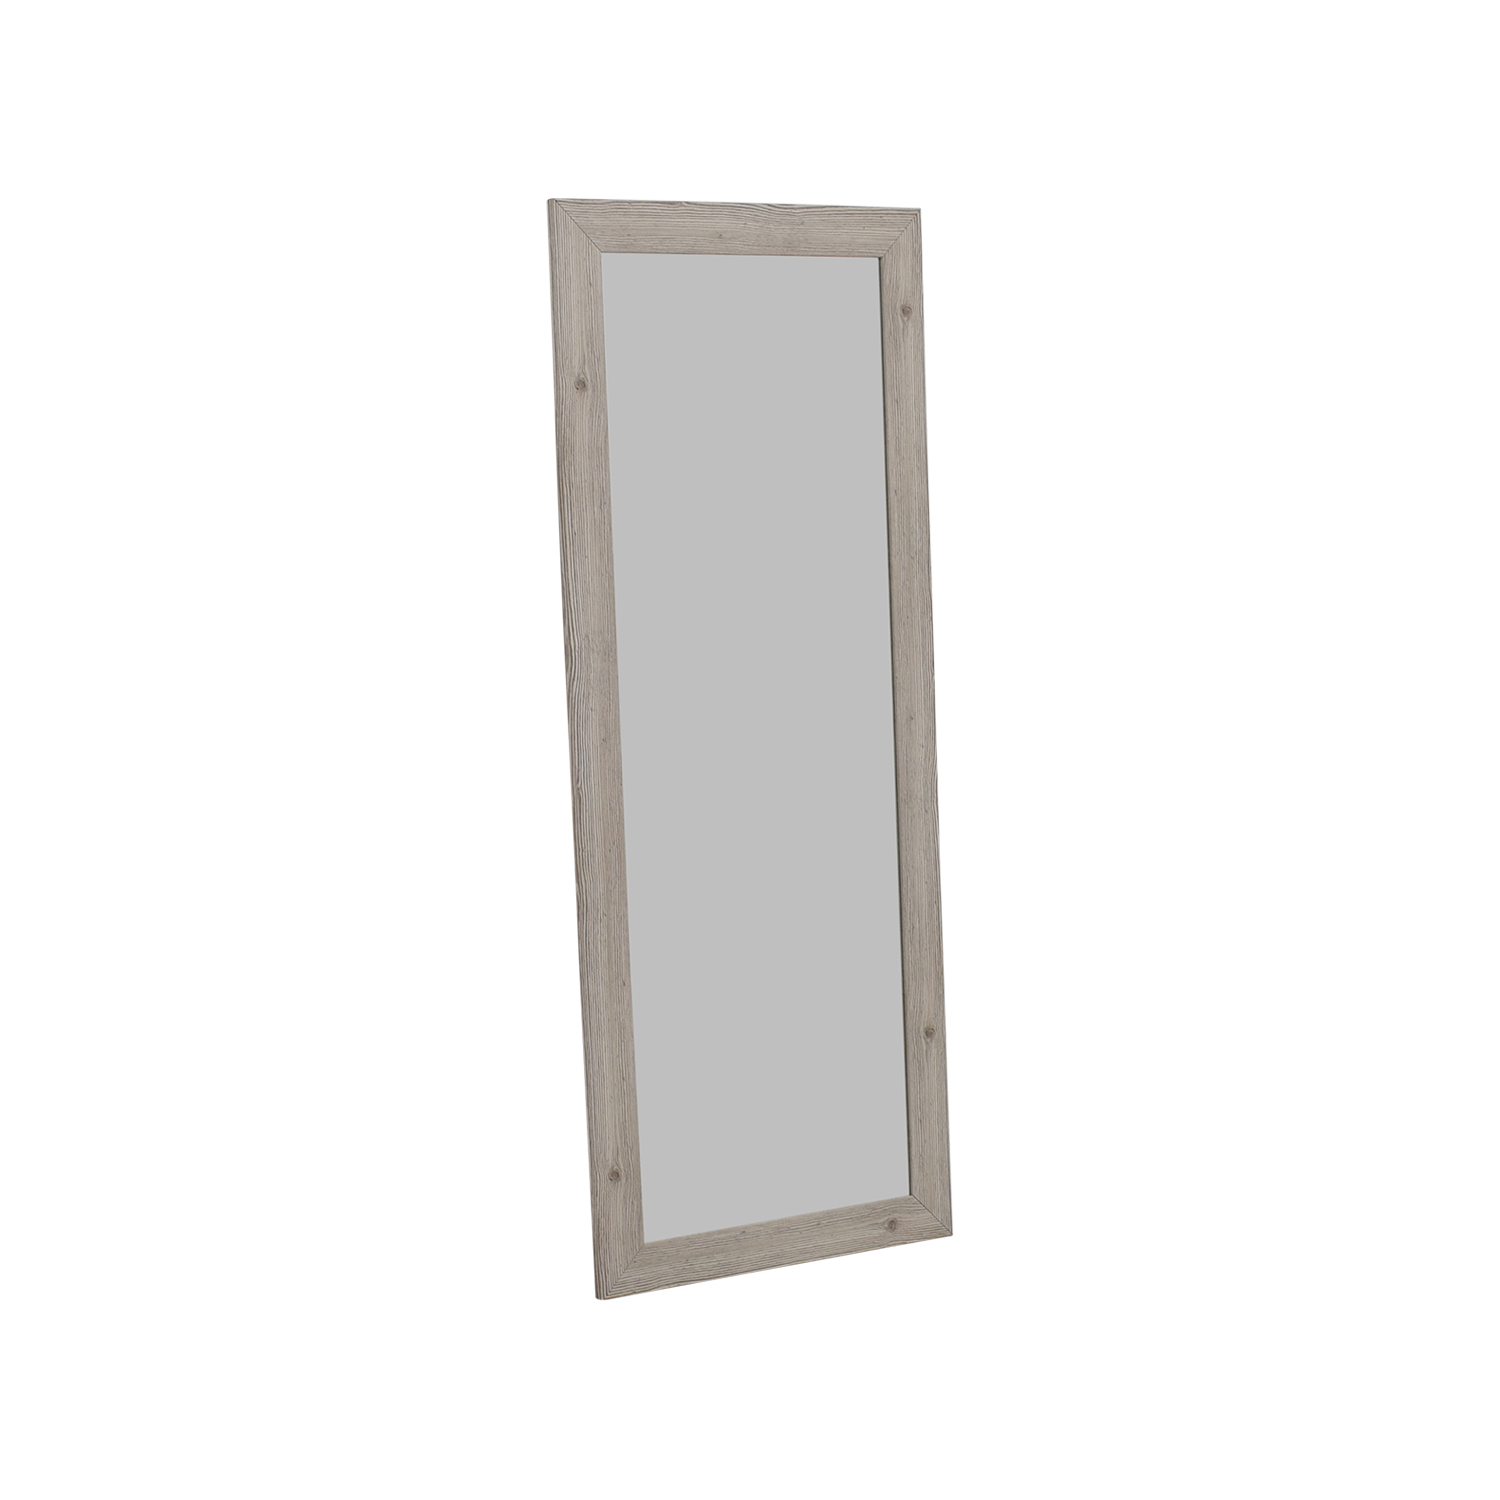 Floor mirrors andre rectangle floor mirror delano black for Mirror questions